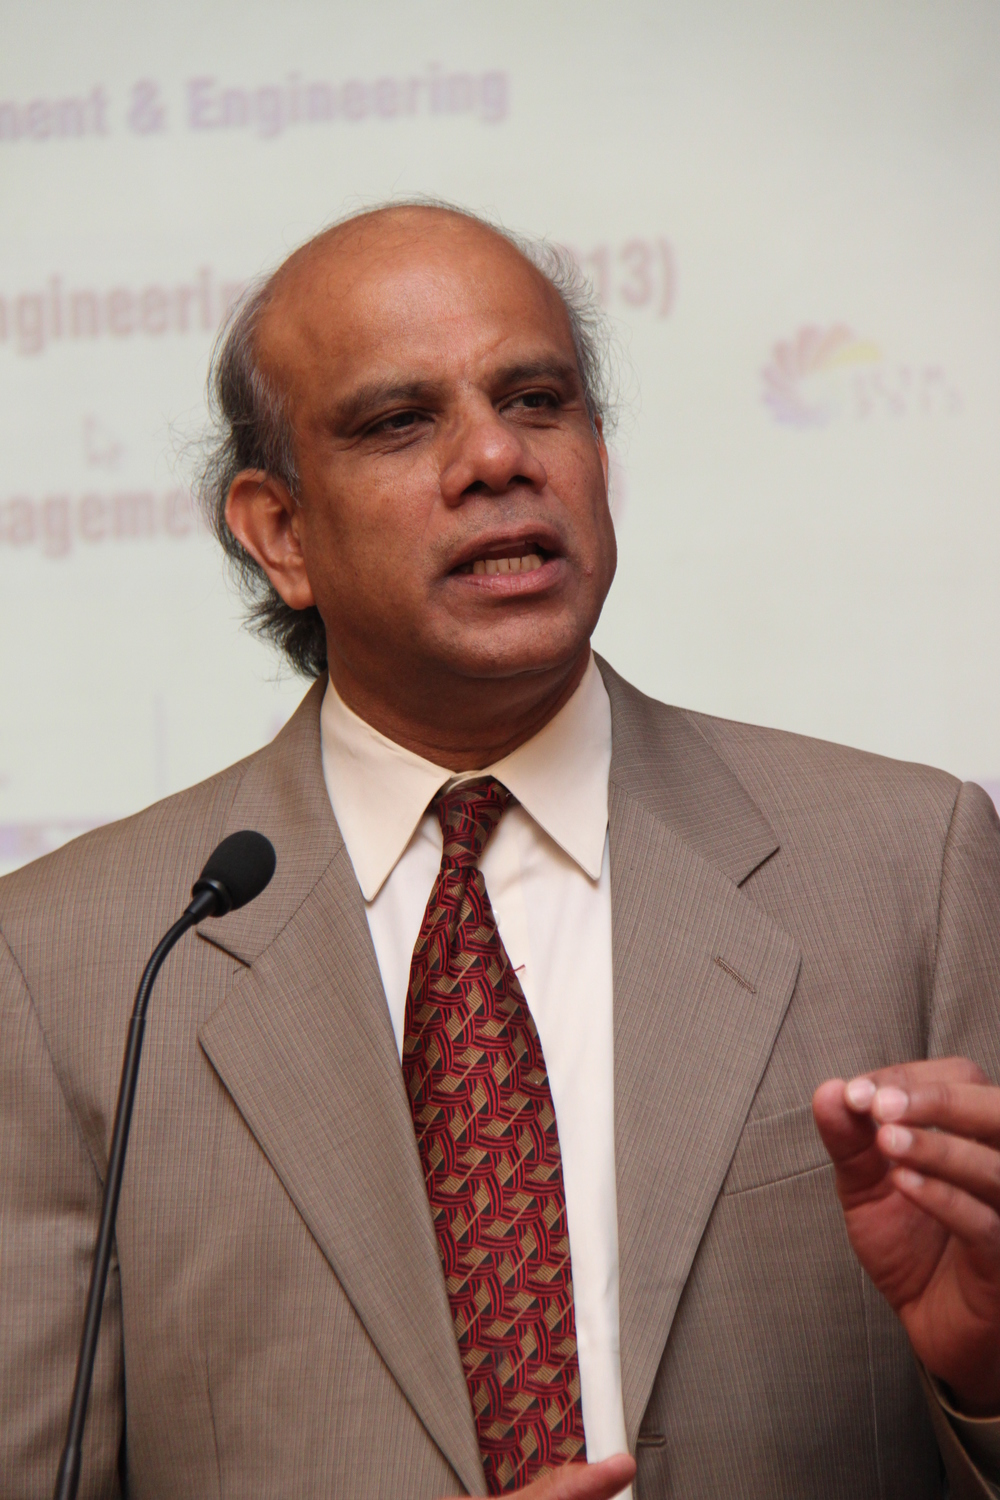 Dr. Gurumurthy Kalyanaram addressing a conference.JPG